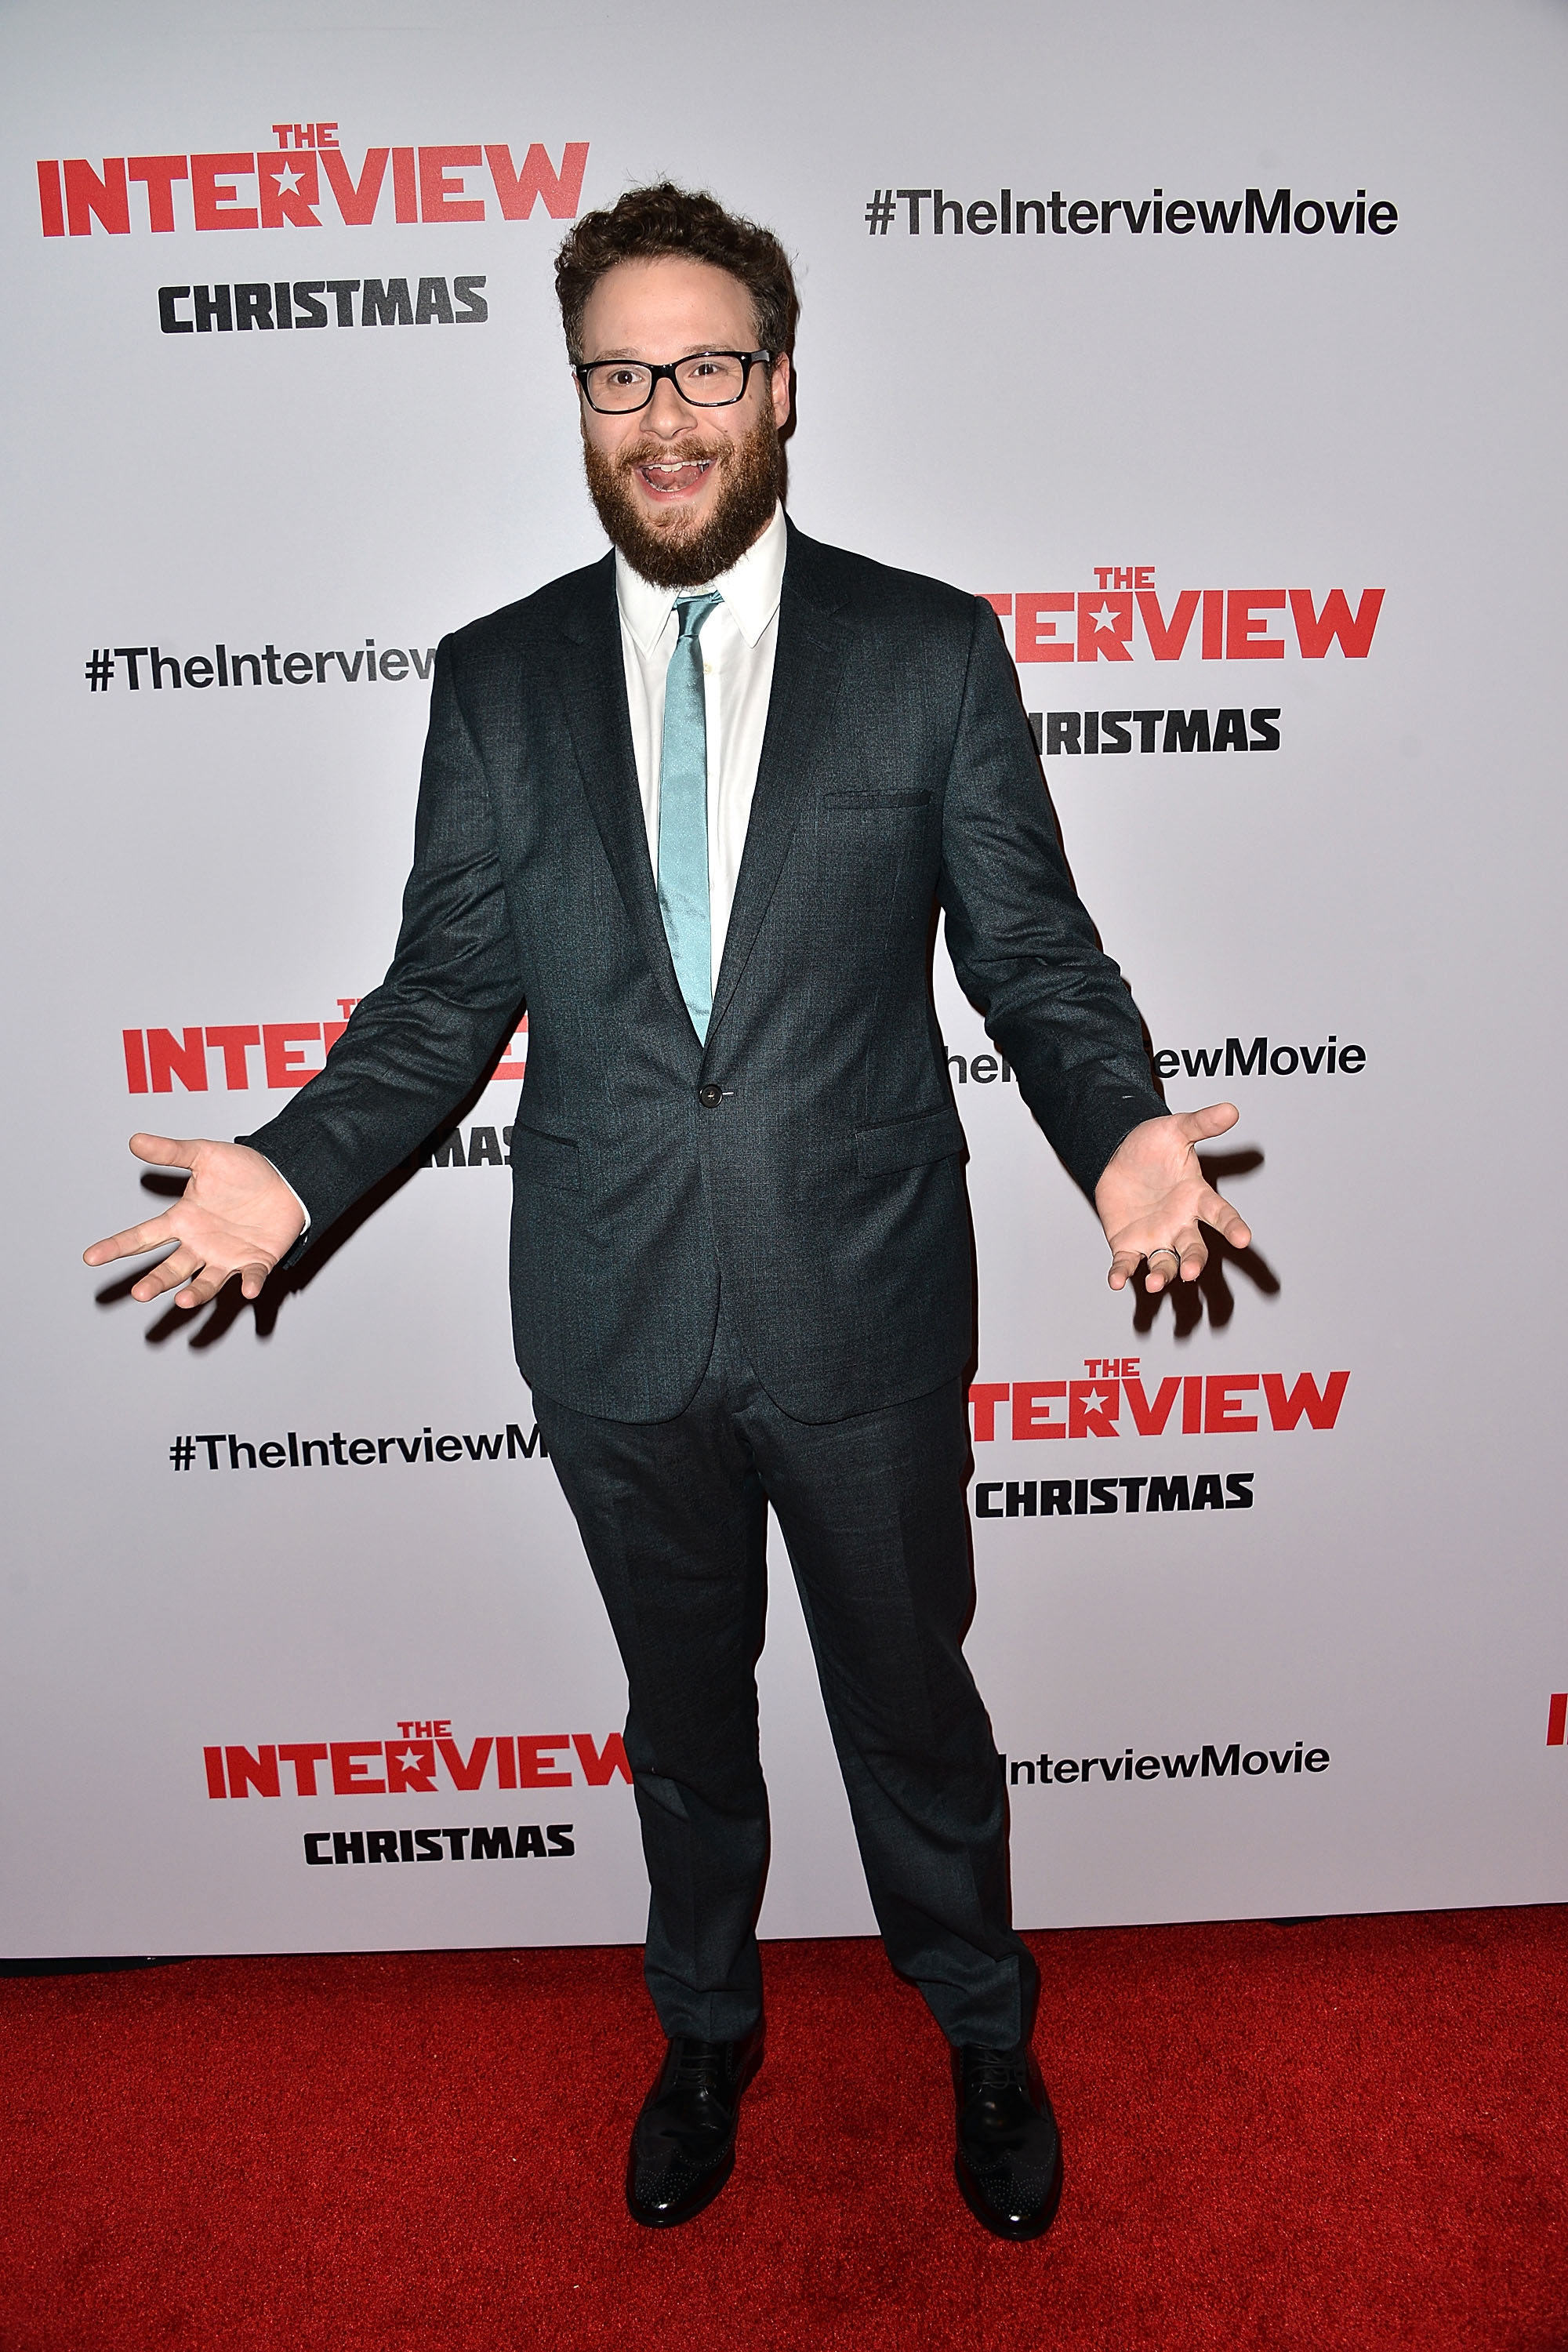 Seth Rogen arrives at the Los Angeles premiere of 'The Interview' held at The Theatre at Ace Hotel Downtown LA on December 11, 2014 in Los Angeles, California.